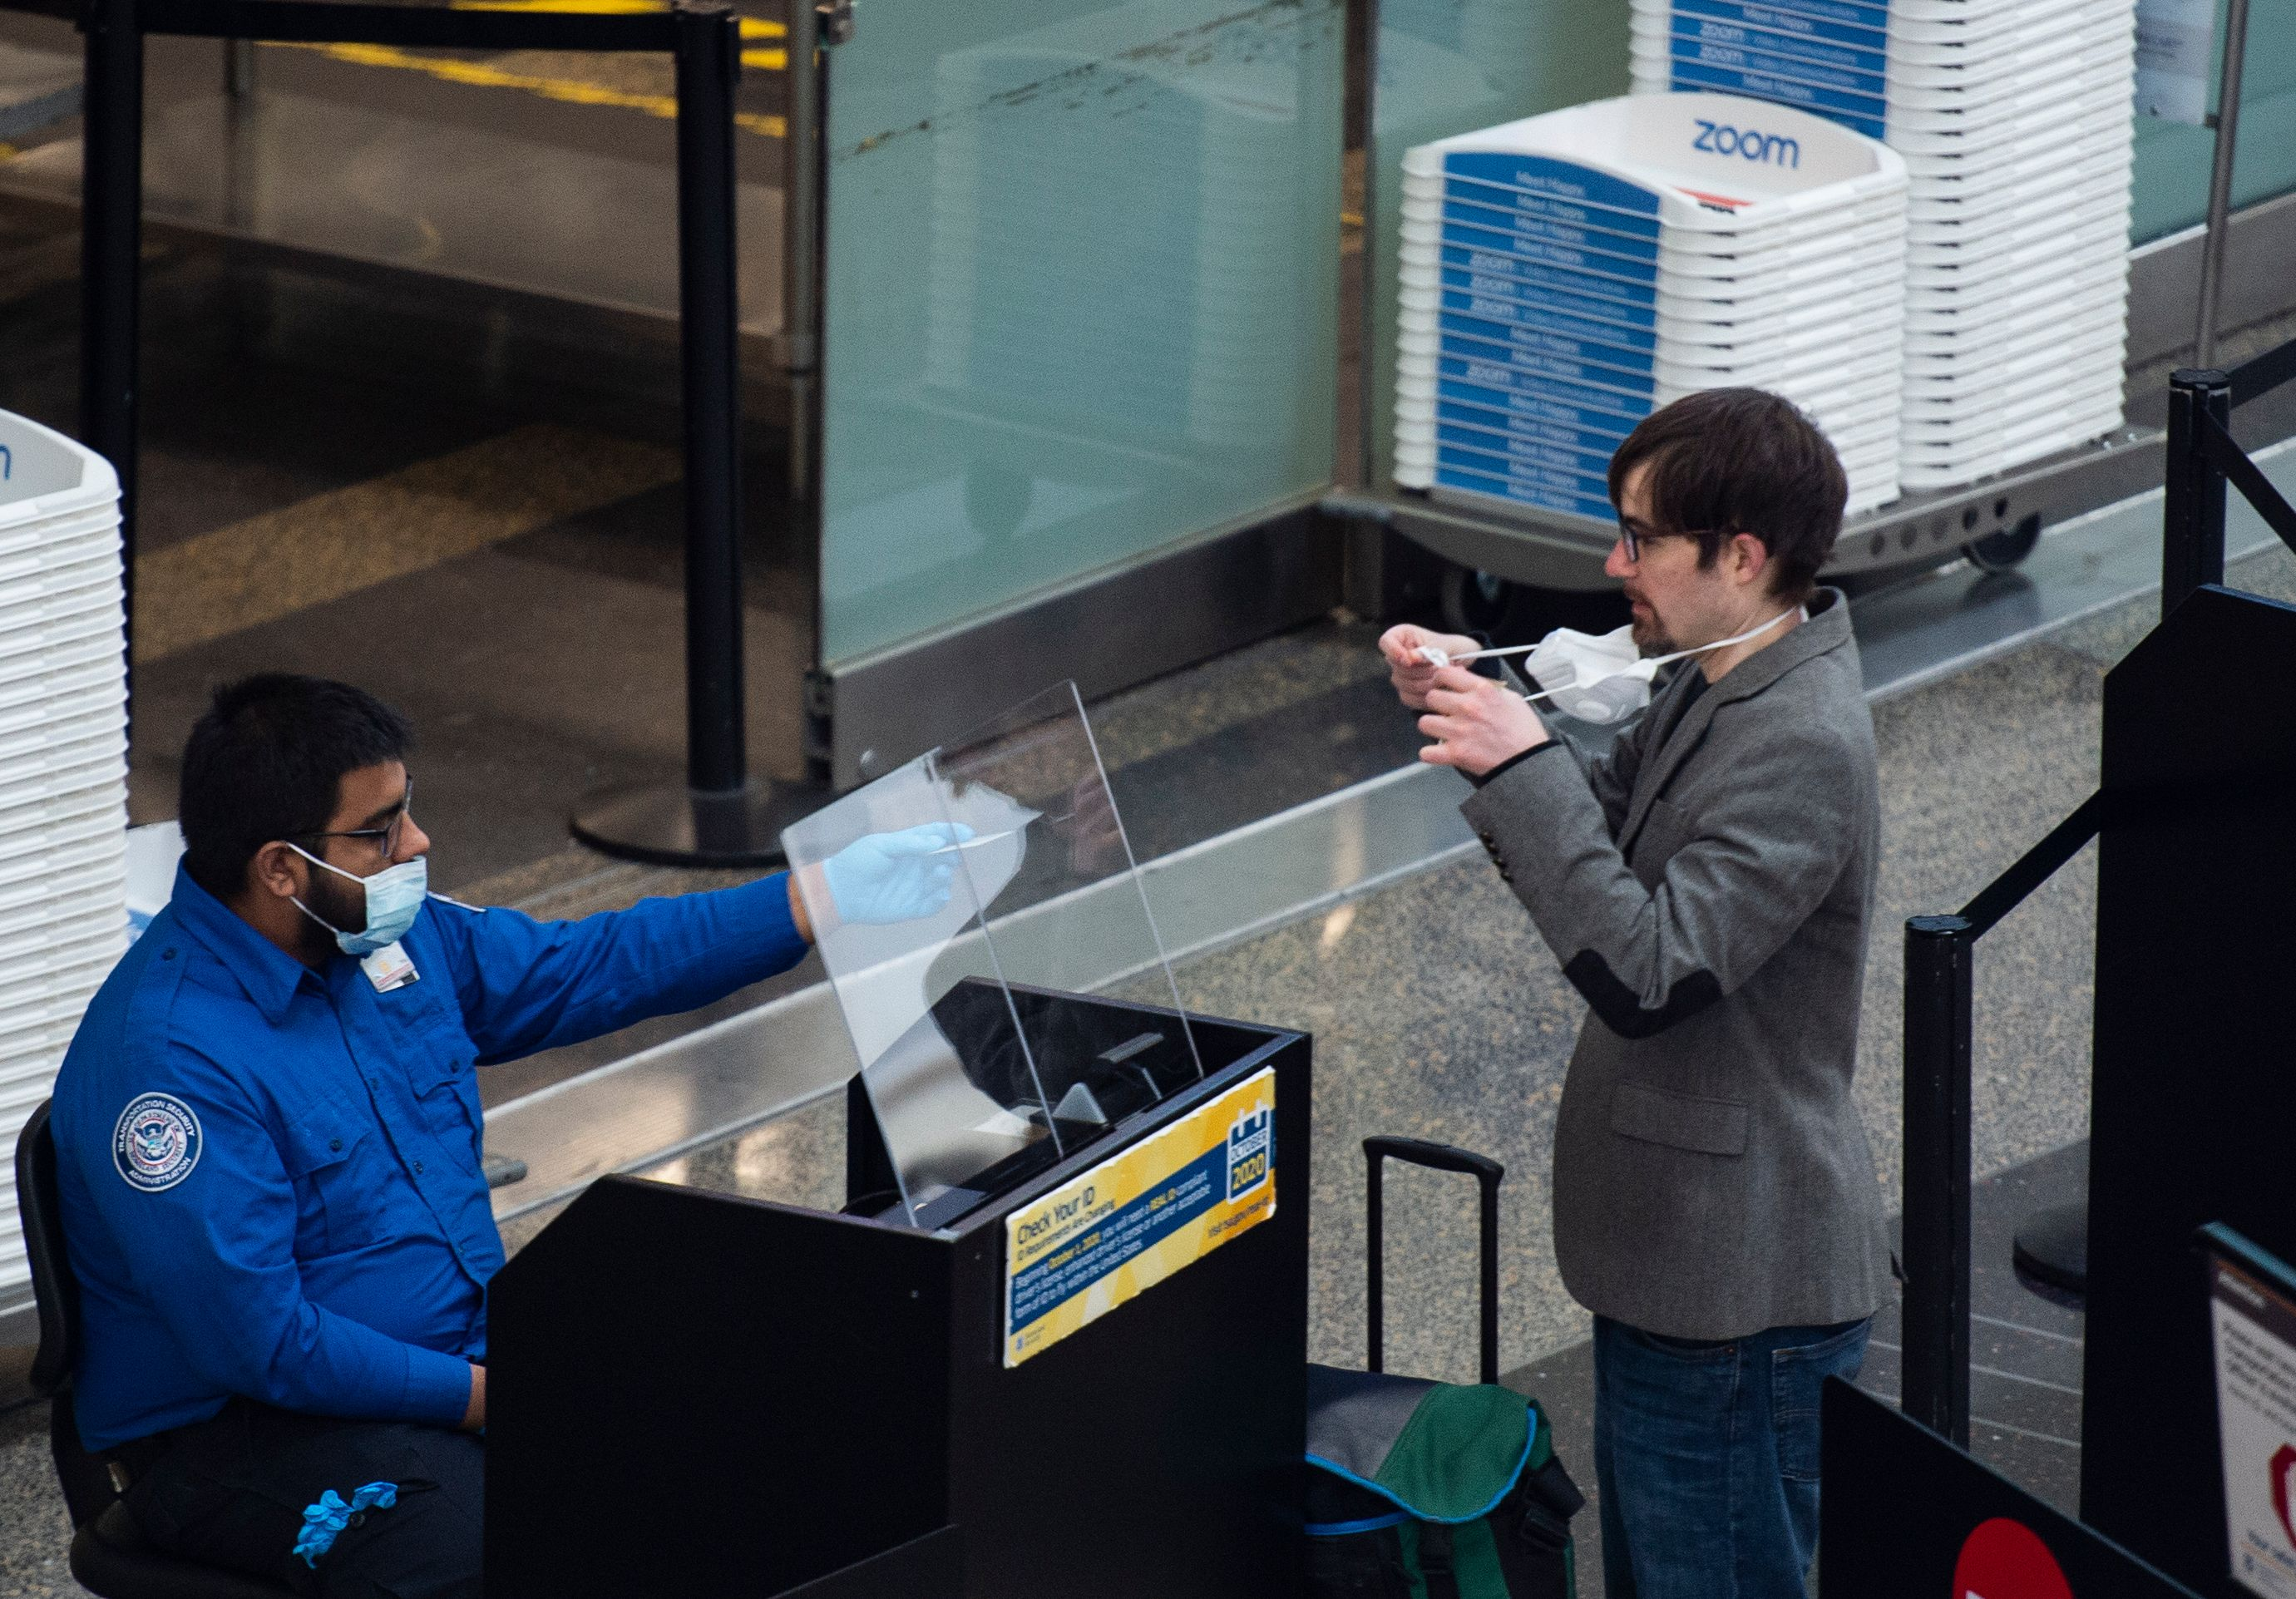 A passenger removes his mask as he has his ID checked by a Transportation Security Administration (TSA) employee in Ronald Reagan Washington National Airport in Arlington, Virginia, on May 12, 2020. - (Photo by ANDREW CABALLERO-REYNOLDS/AFP via Getty Images)